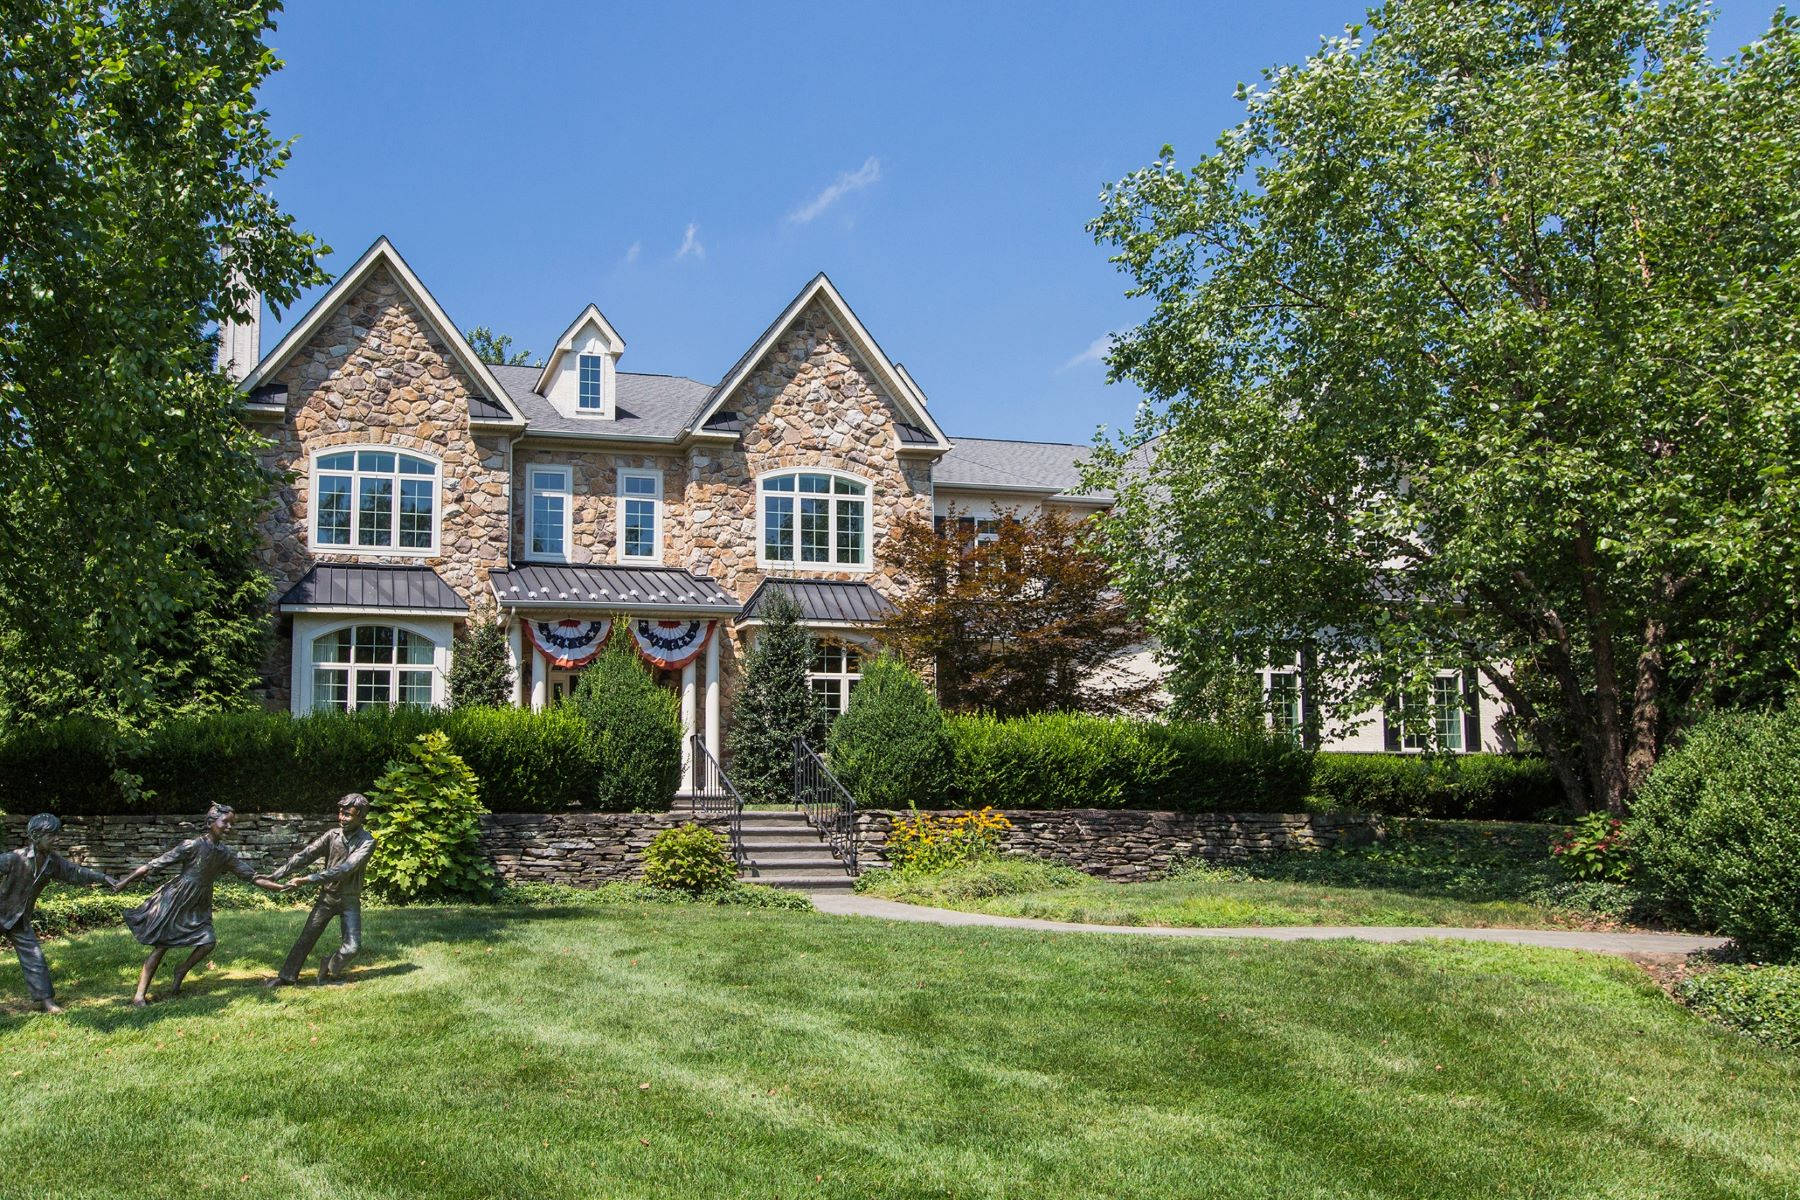 Single Family Home for Sale at Elegant French Country Residence 5945 STONEY HILL RD, New Hope, Pennsylvania, 18938 United States